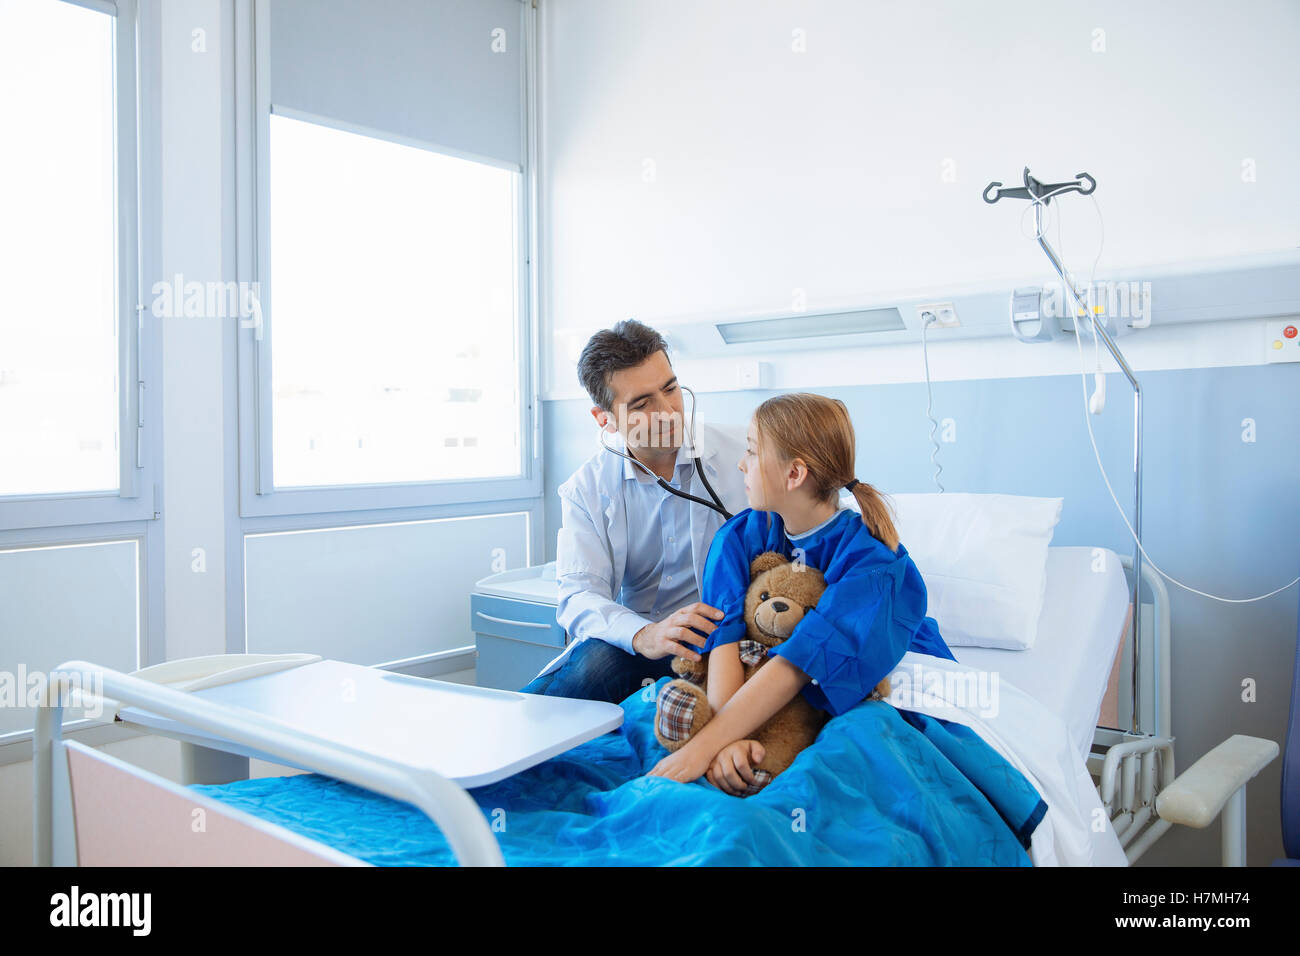 Doctor examining girl patient in hospital Photo Stock